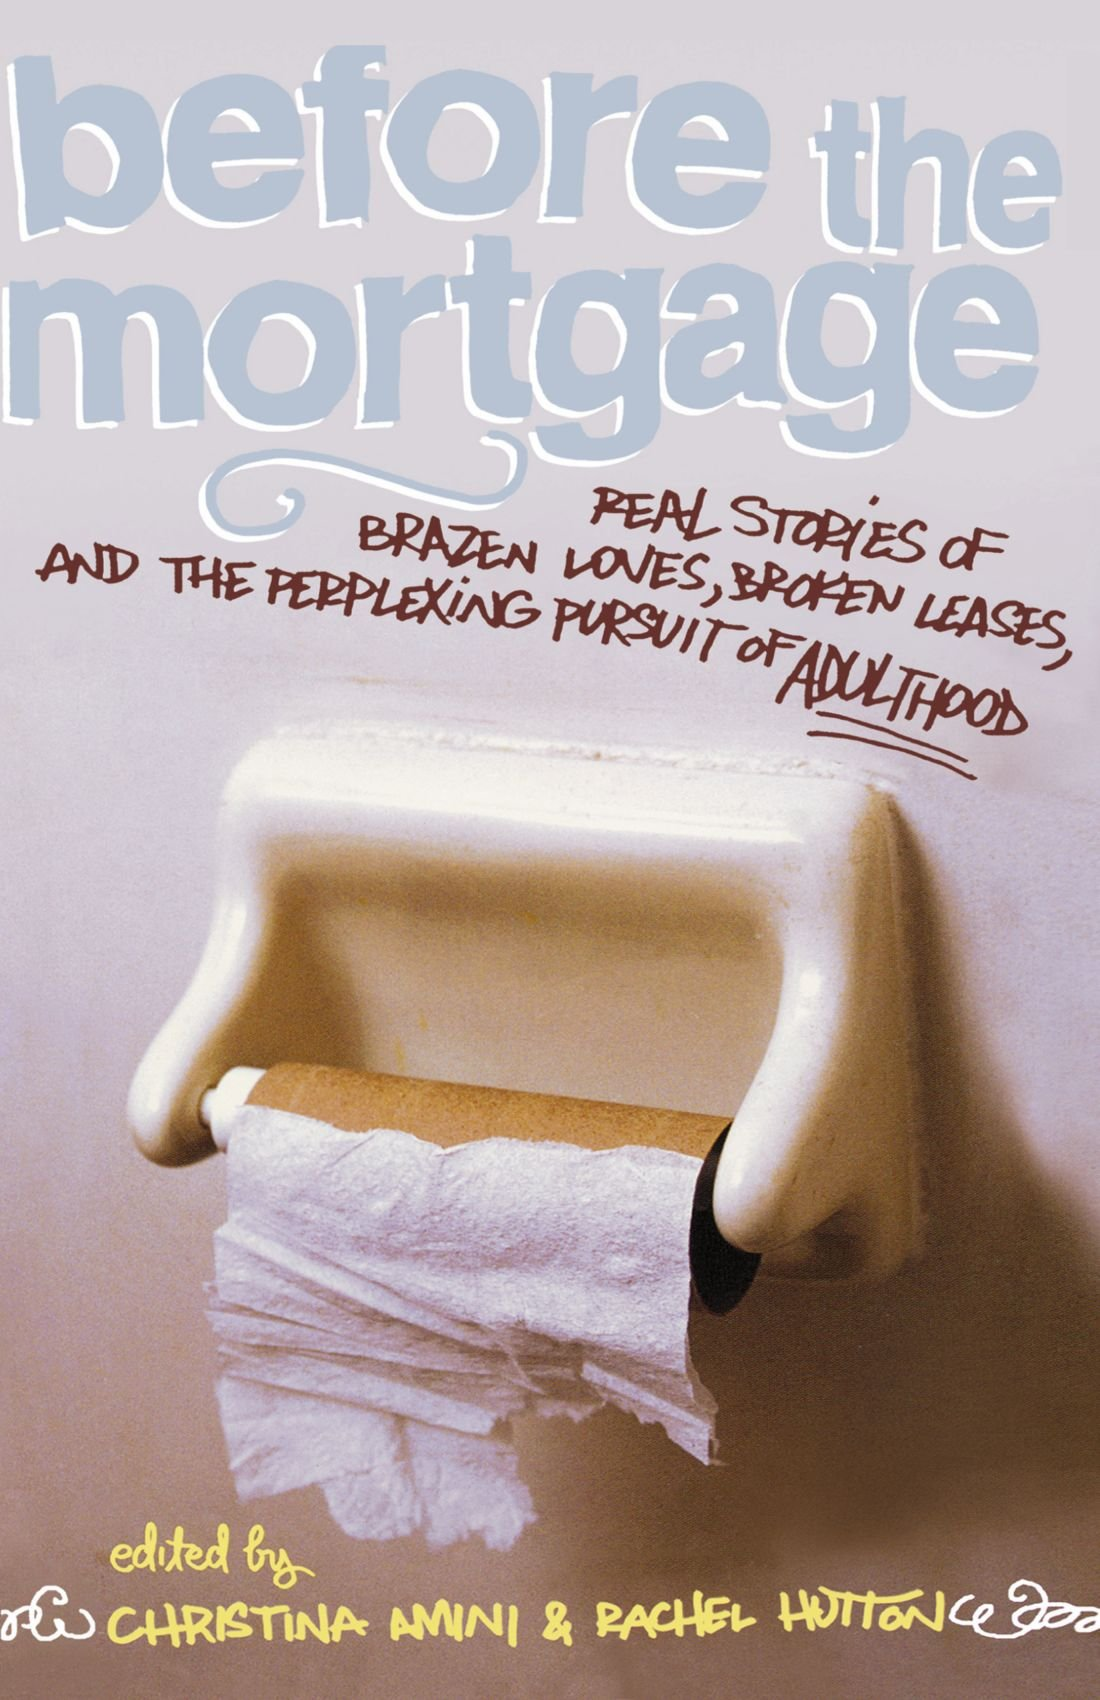 Download Before the Mortgage: Real Stories of Brazen Loves, Broken Leases, and the Perplexing Pursuit of Adulthood pdf epub